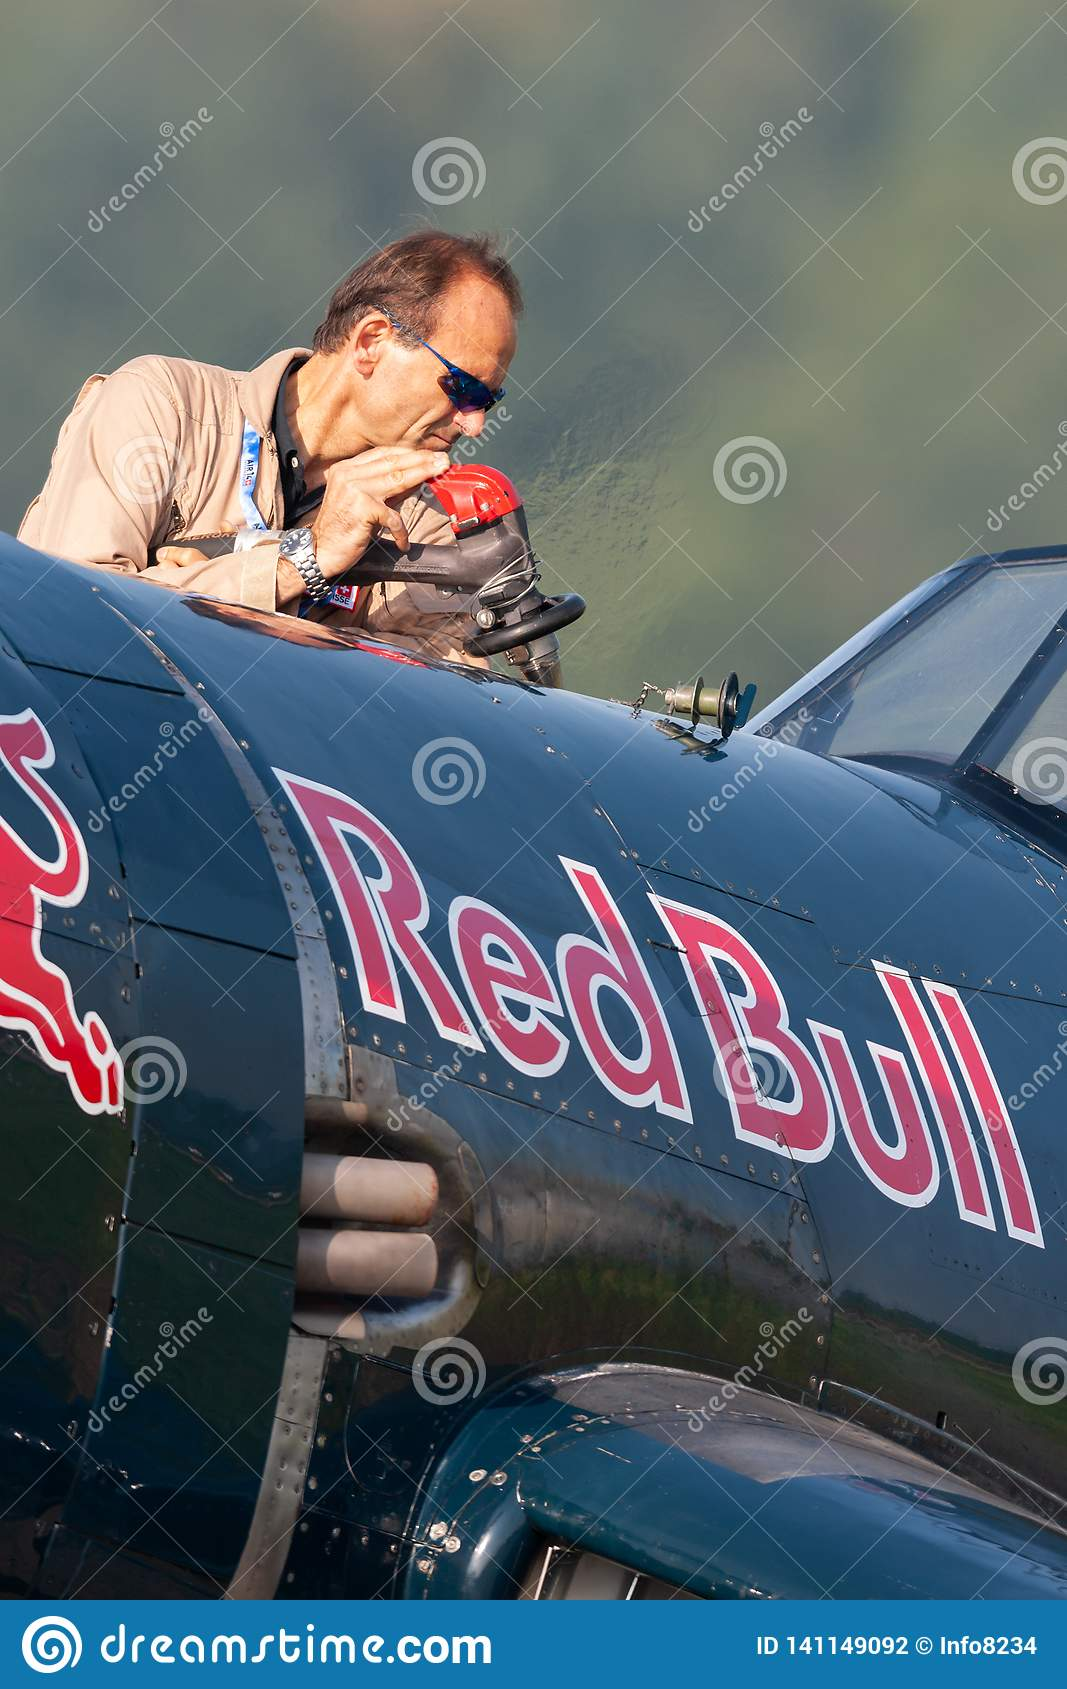 Eric Goujon refuels the Vought F4U-4 Corsair aircraft from the Flying Bulls Collection